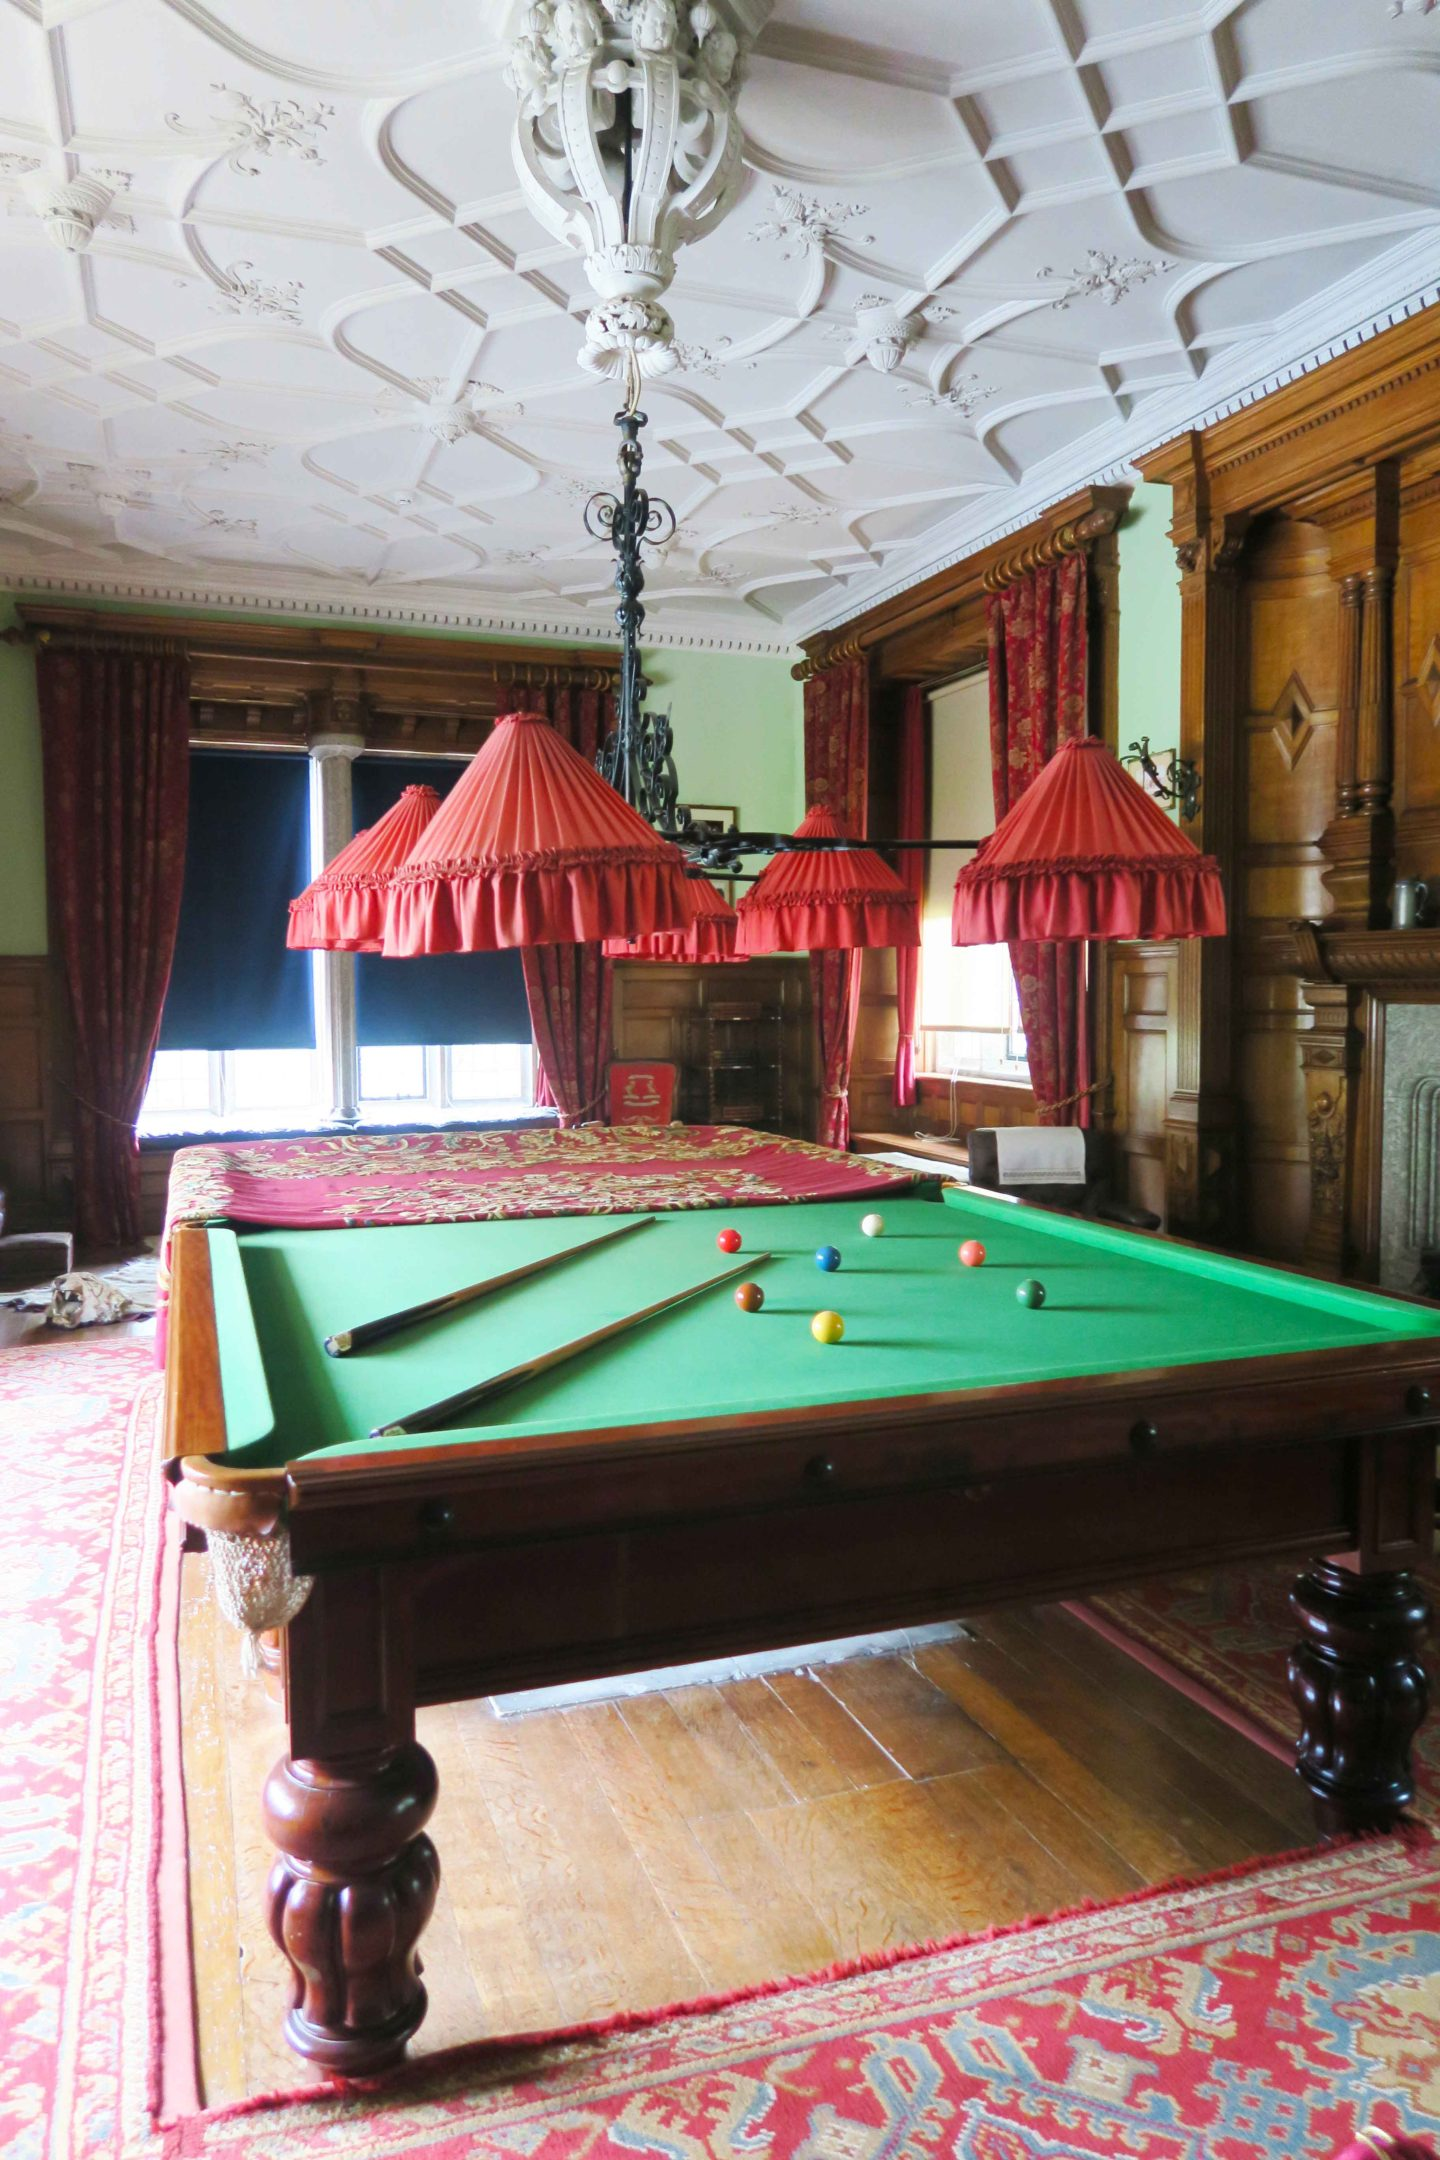 lanhydrock pool table and room located in cornwall